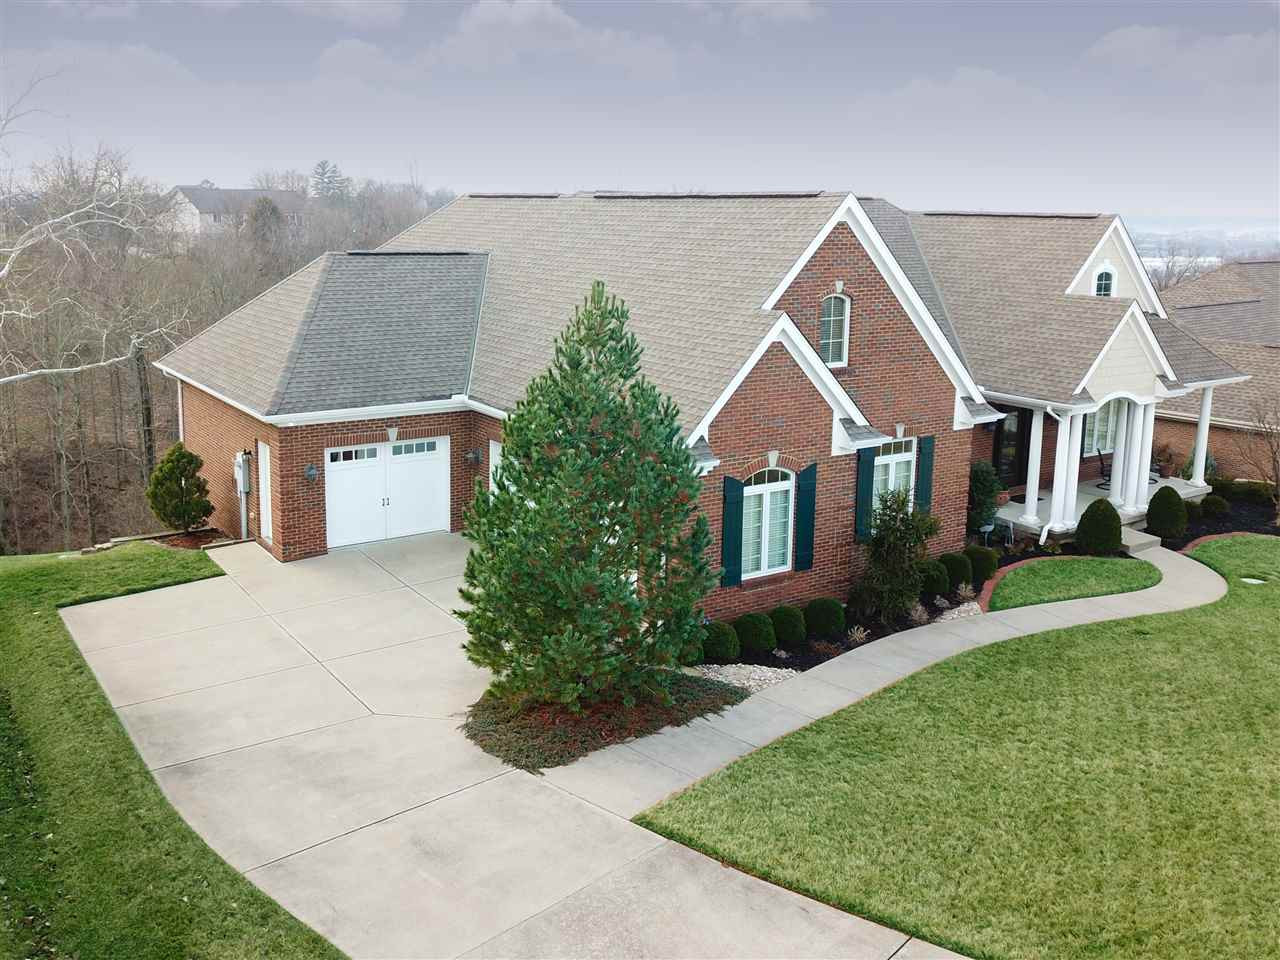 Photo 1 for 3 Queens View Ln Wilder, KY 41076